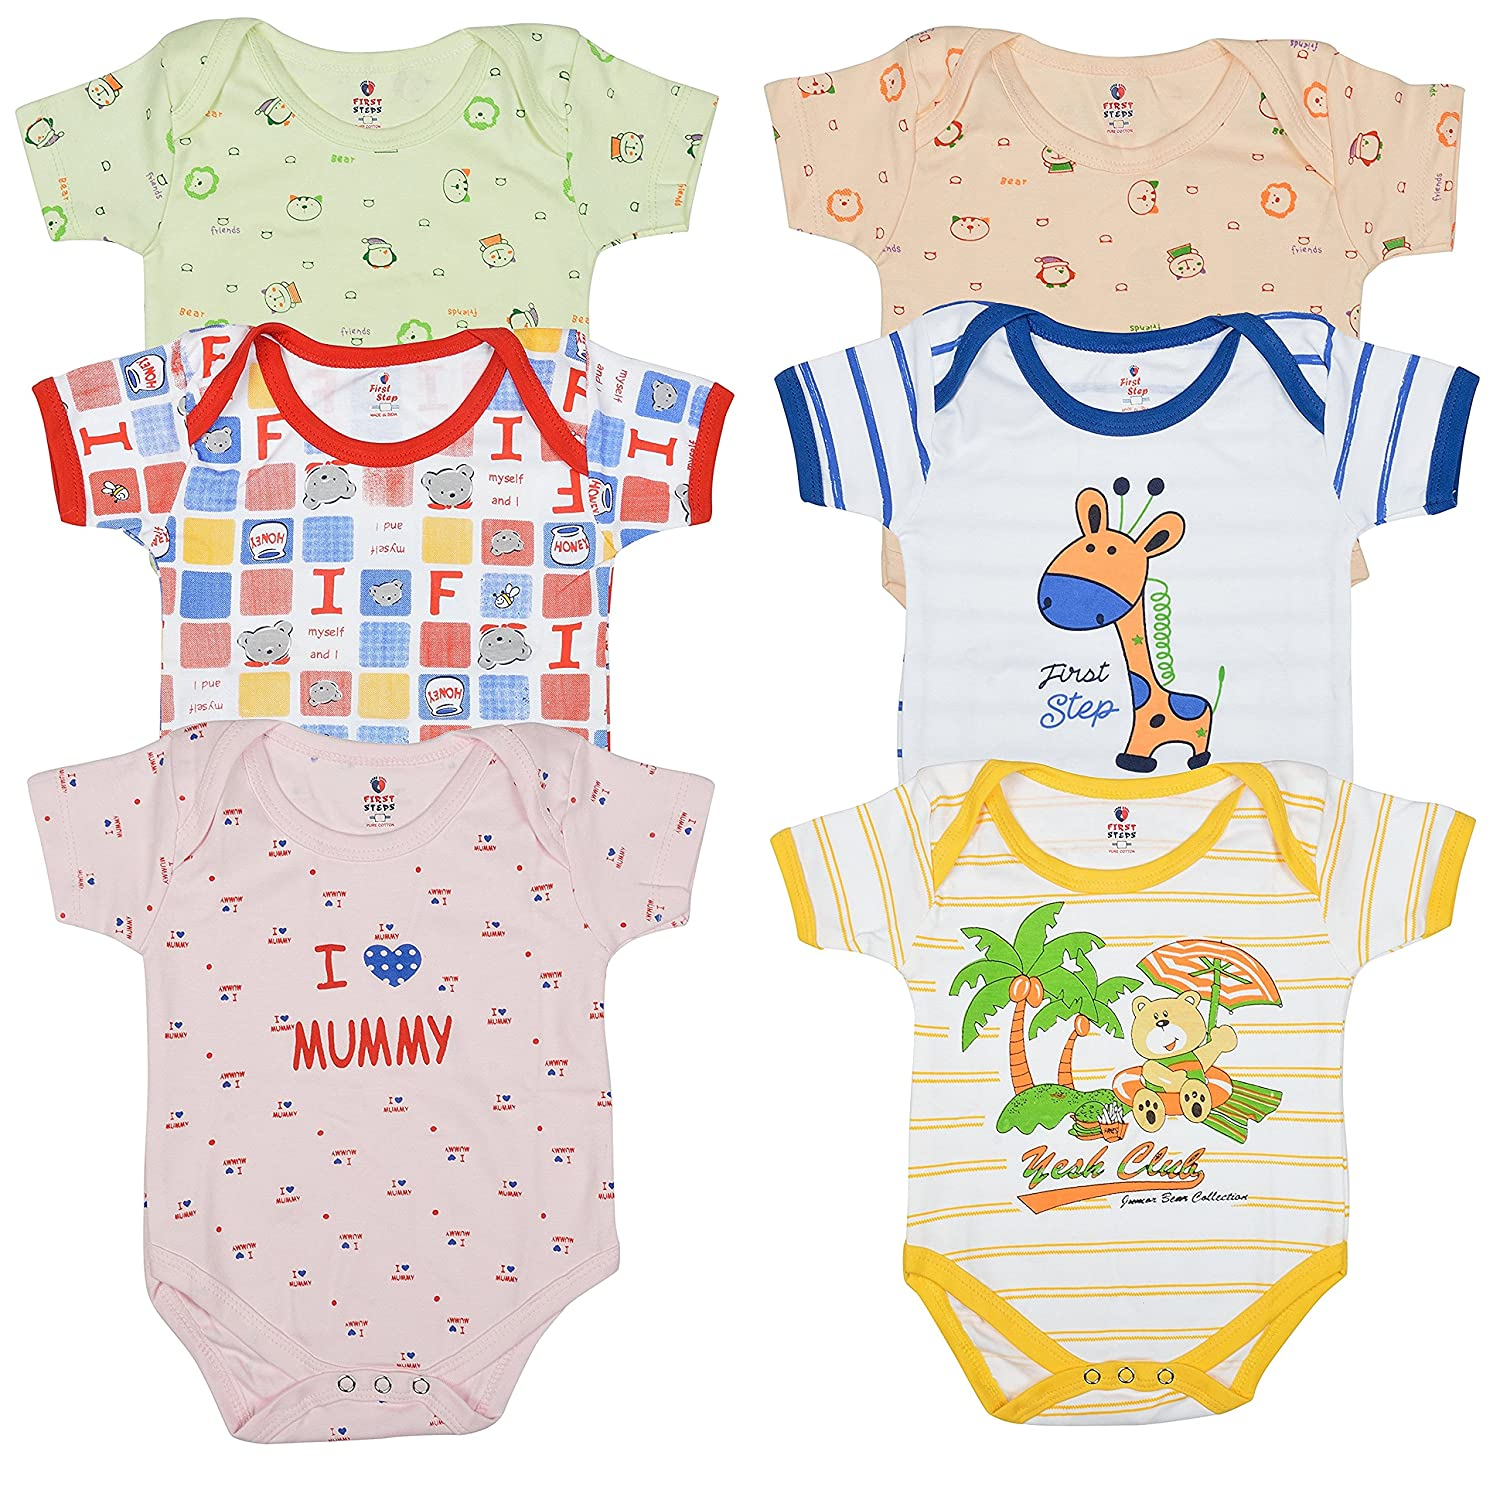 1fcee86d5 Baby Clothes for New born Infant Girl Boy Cotton Rompers Bodysuit ...